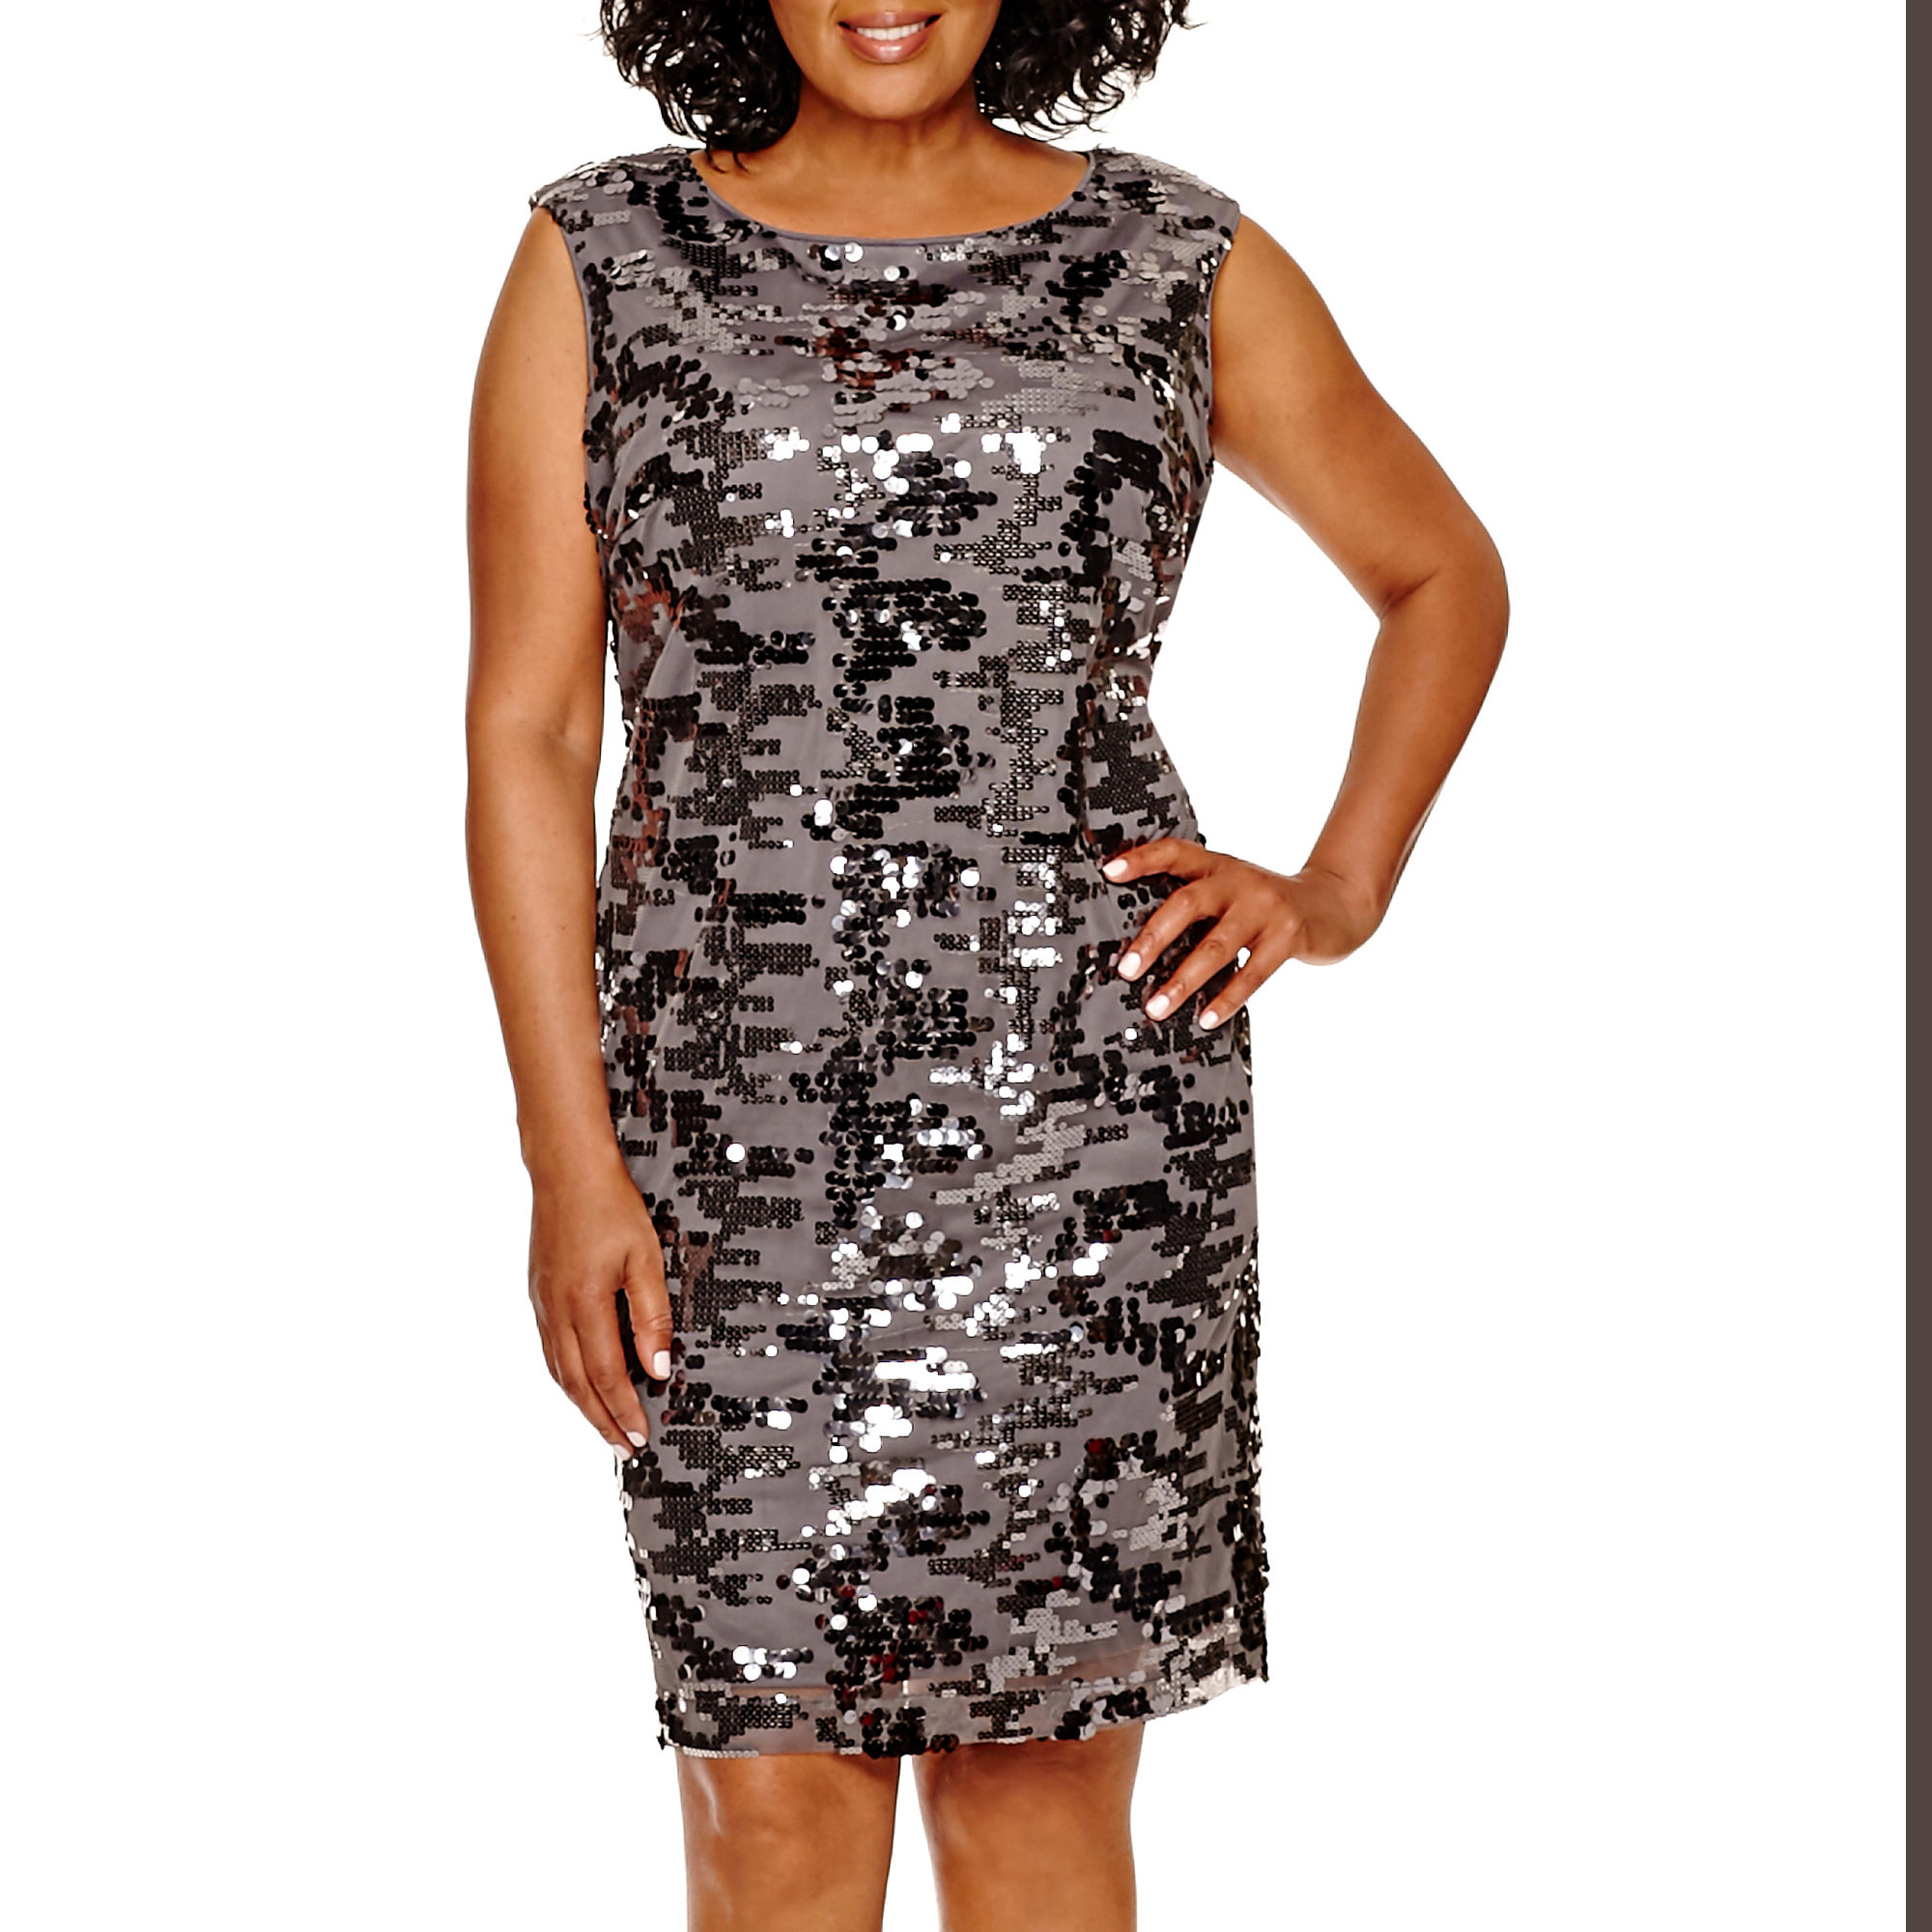 Studio 1 Sleeveless Sequin Sheath Dress - Plus